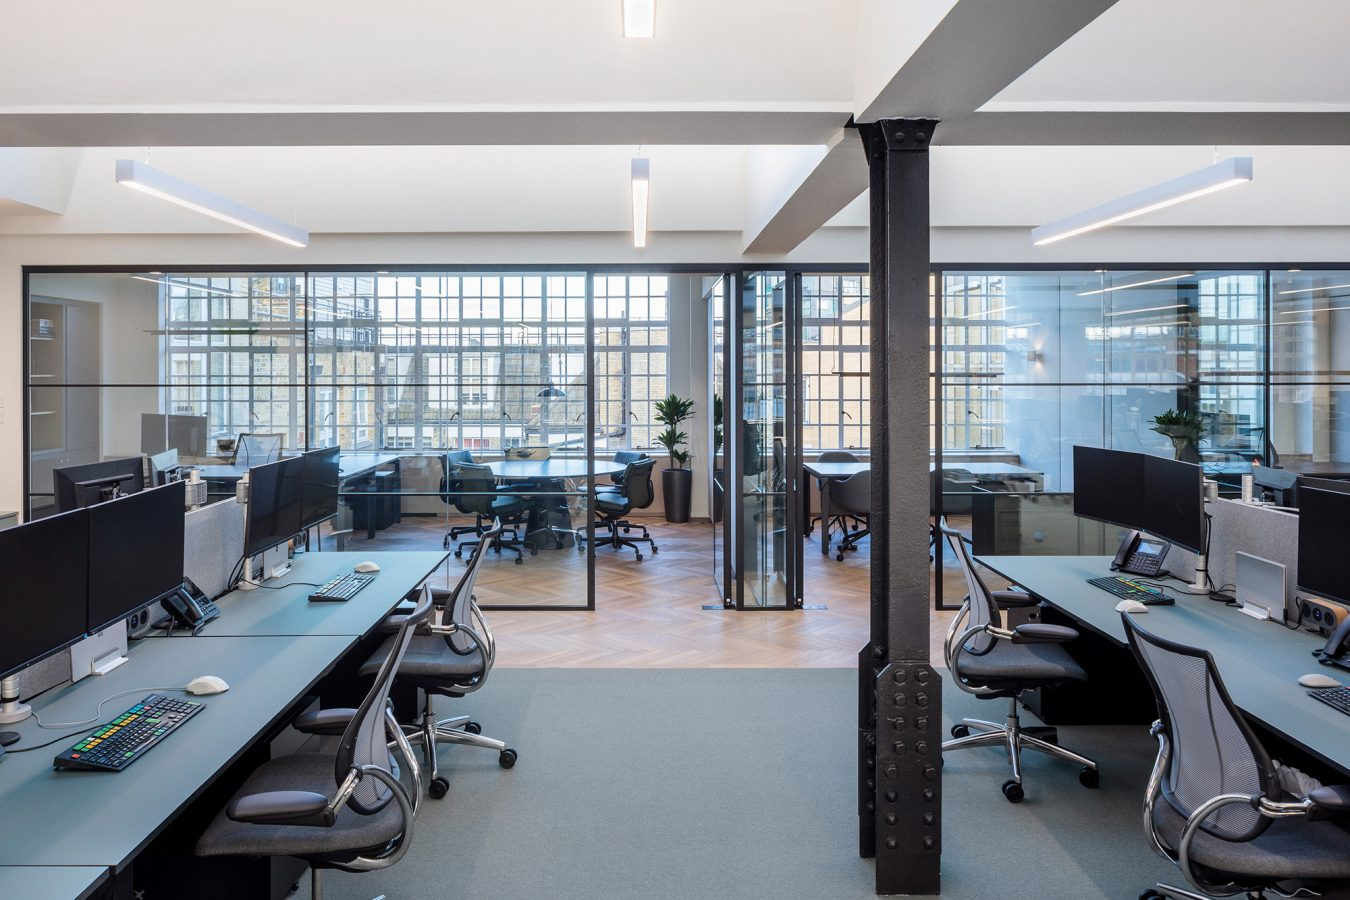 Open plan work-space decorated with wood floor tiles and multiple meeting rooms divided by glazed glass partitions.